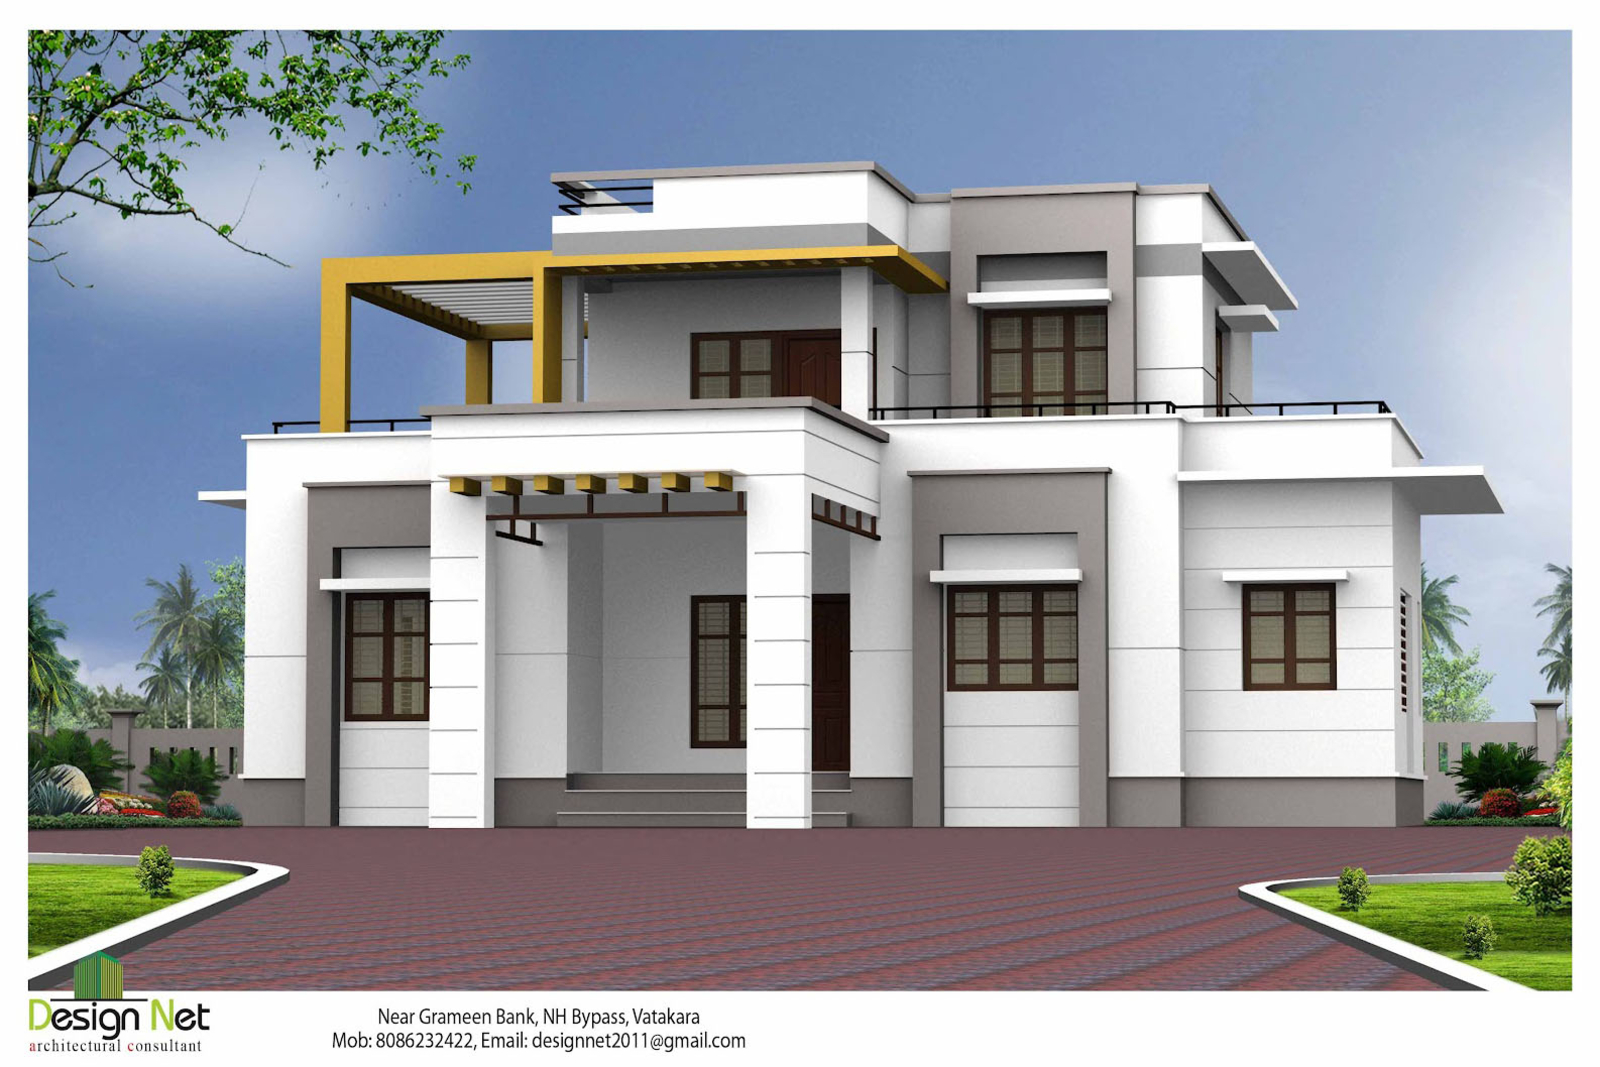 Outstanding Modern Home Design Ideas Outside 2017 Of 36 House Exterior Ign Largest Home Design Picture Inspirations Pitcheantrous